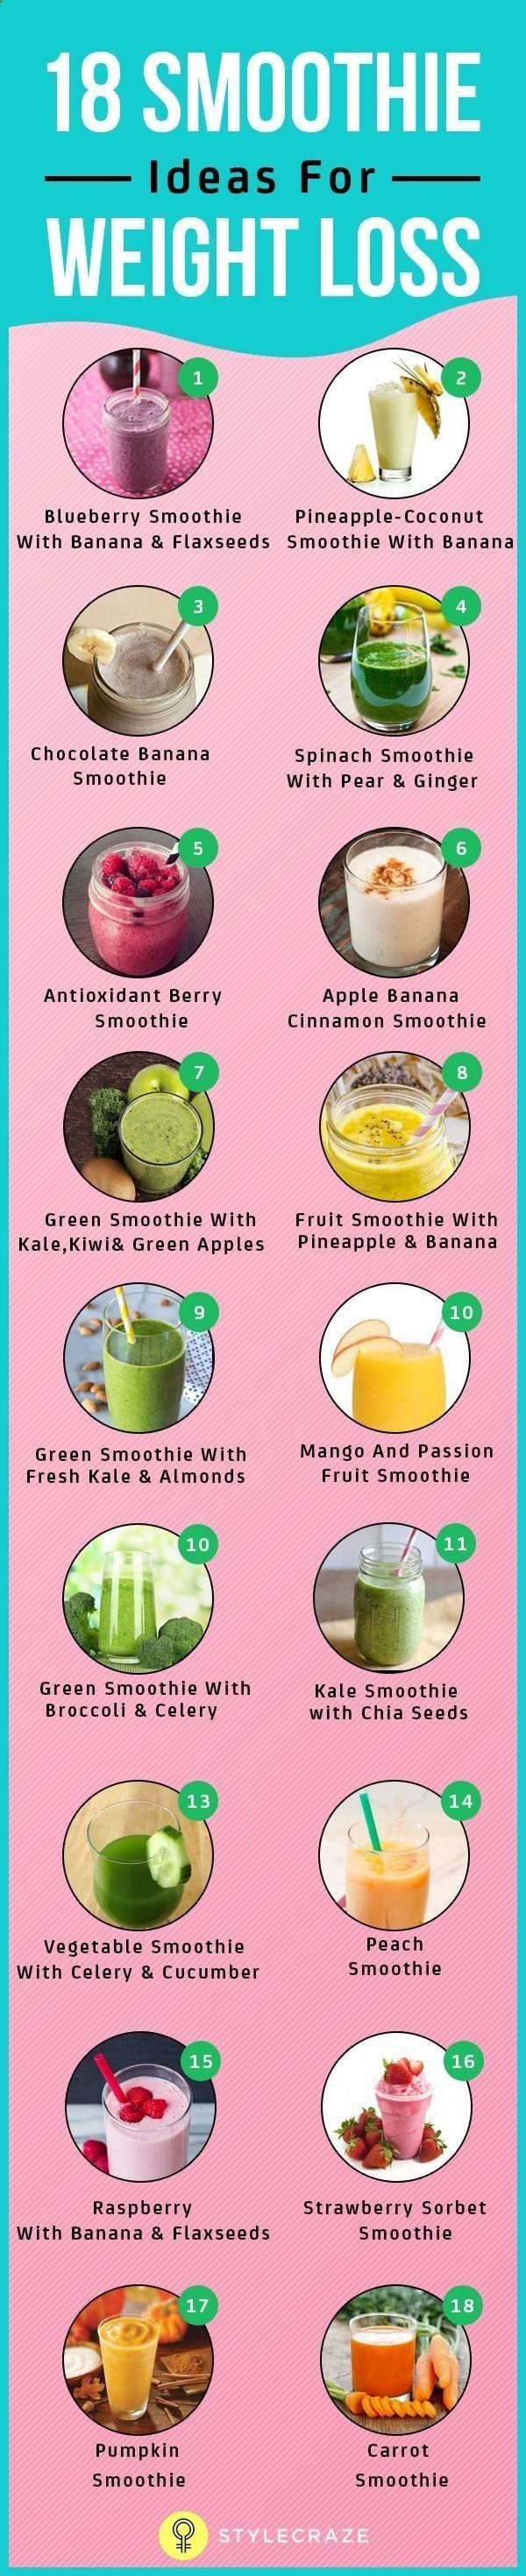 The nutritious delicious way of losing fat is by including smoothies. Shed your excess belly fat by just sipping in these weight loss smoothies. Here are best smoothie recipes for you.